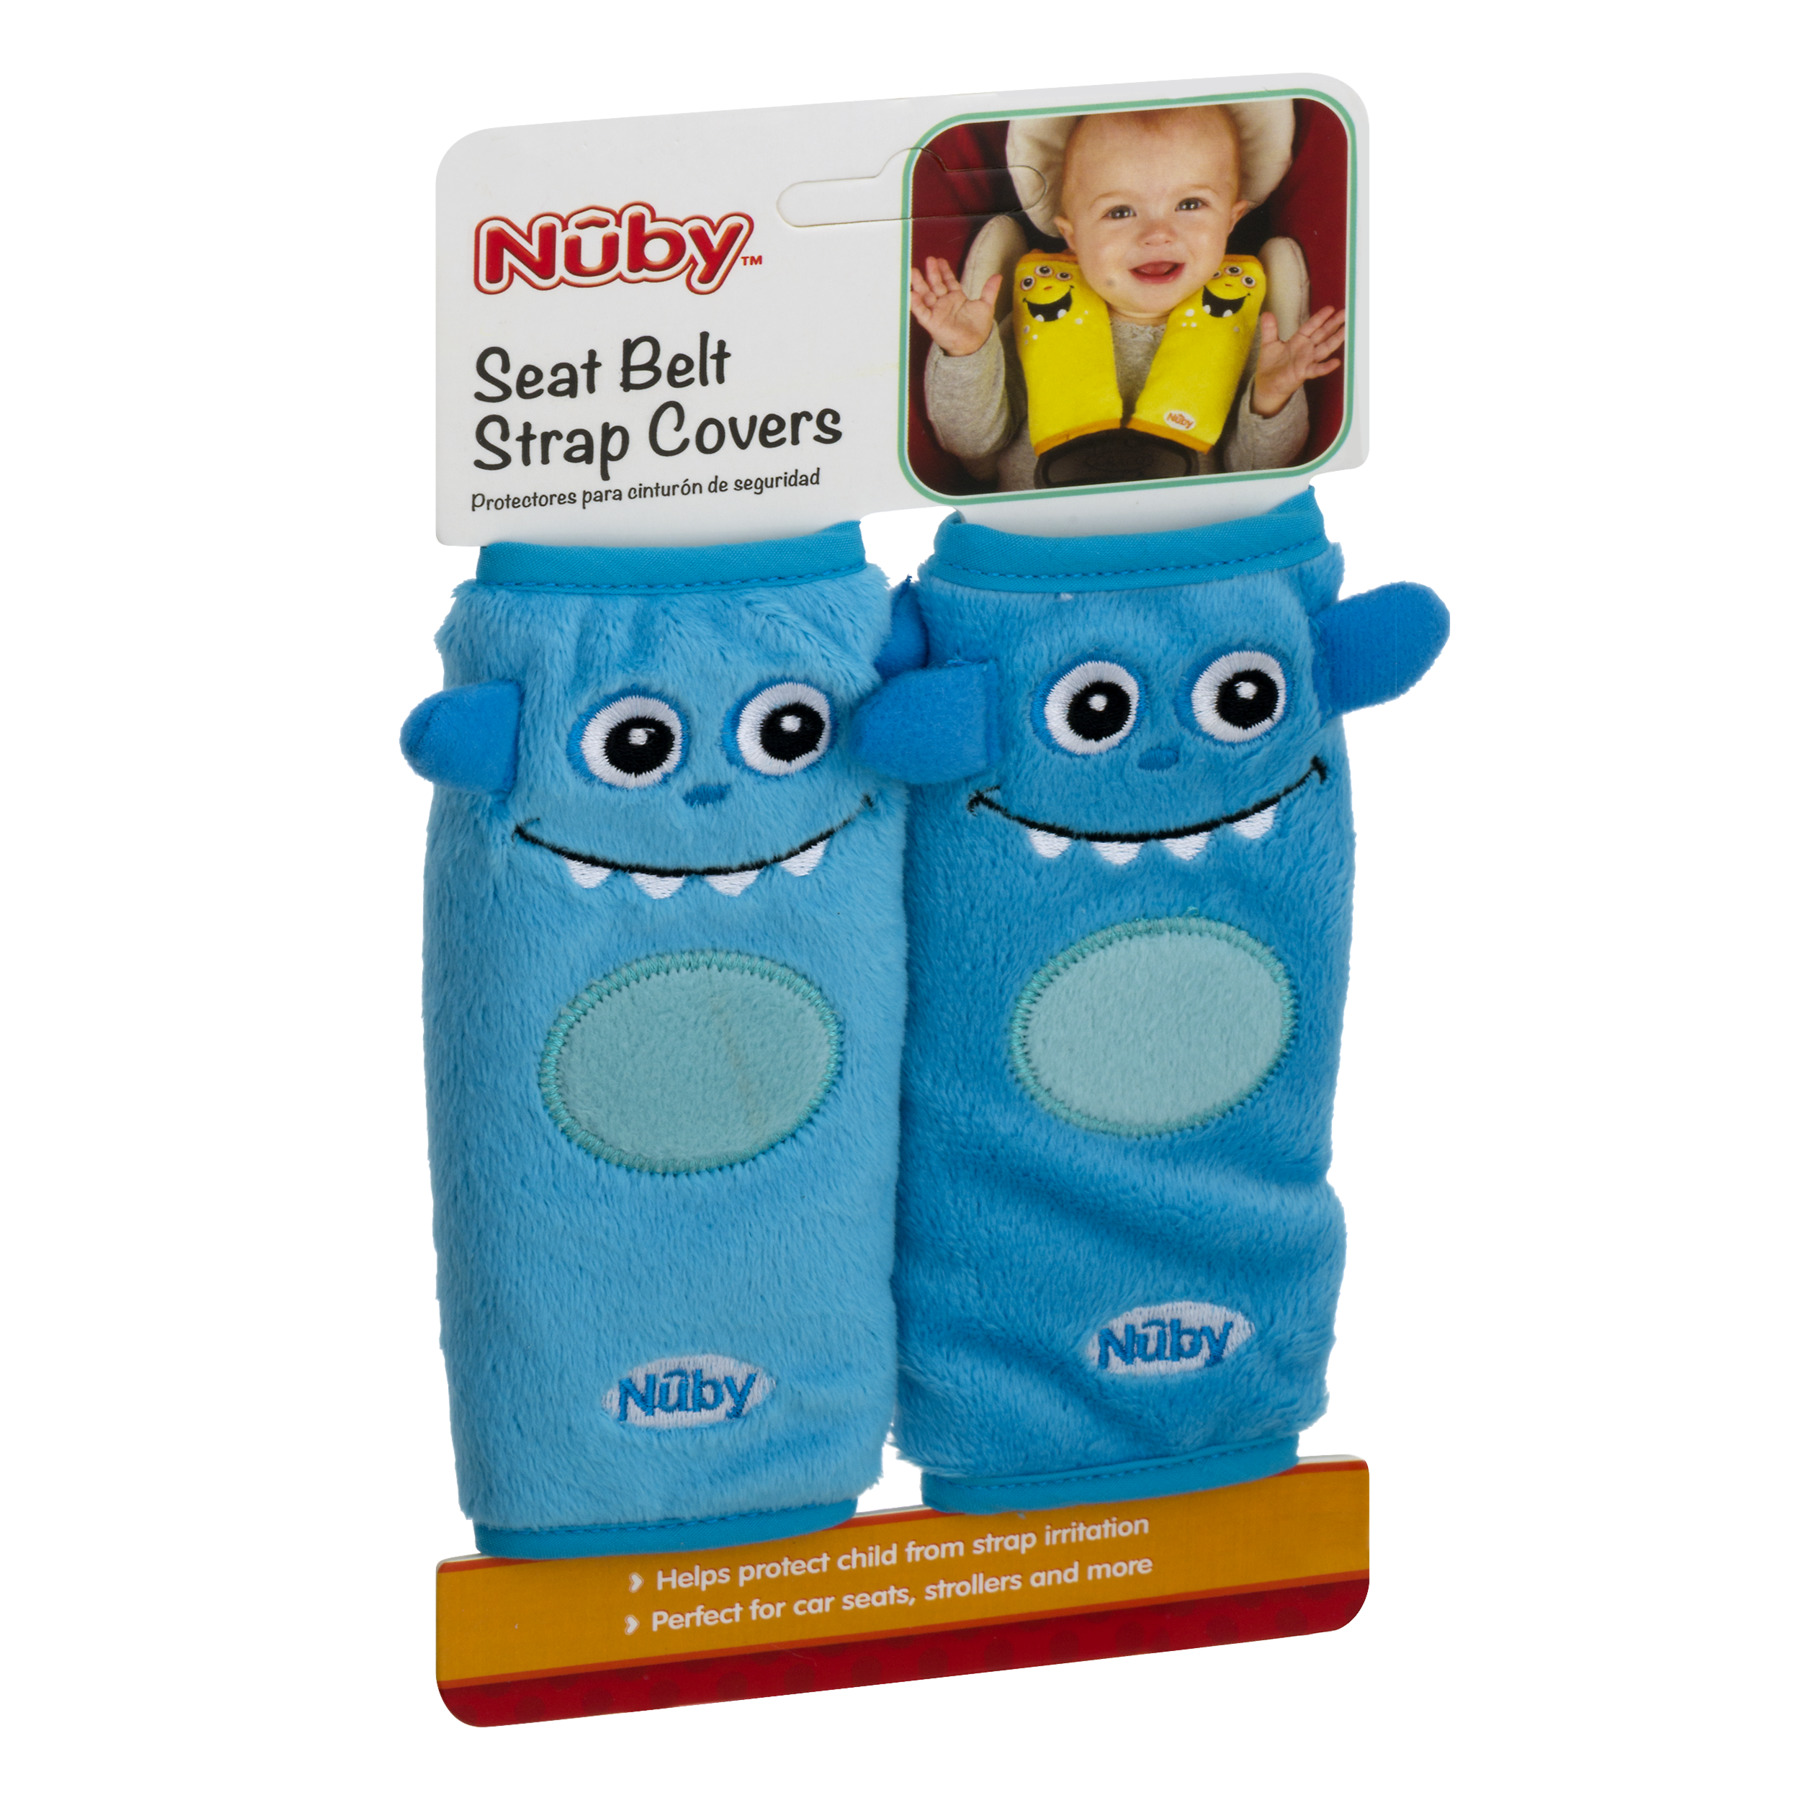 Nuby Seat Belt Strap Covers 10 CT